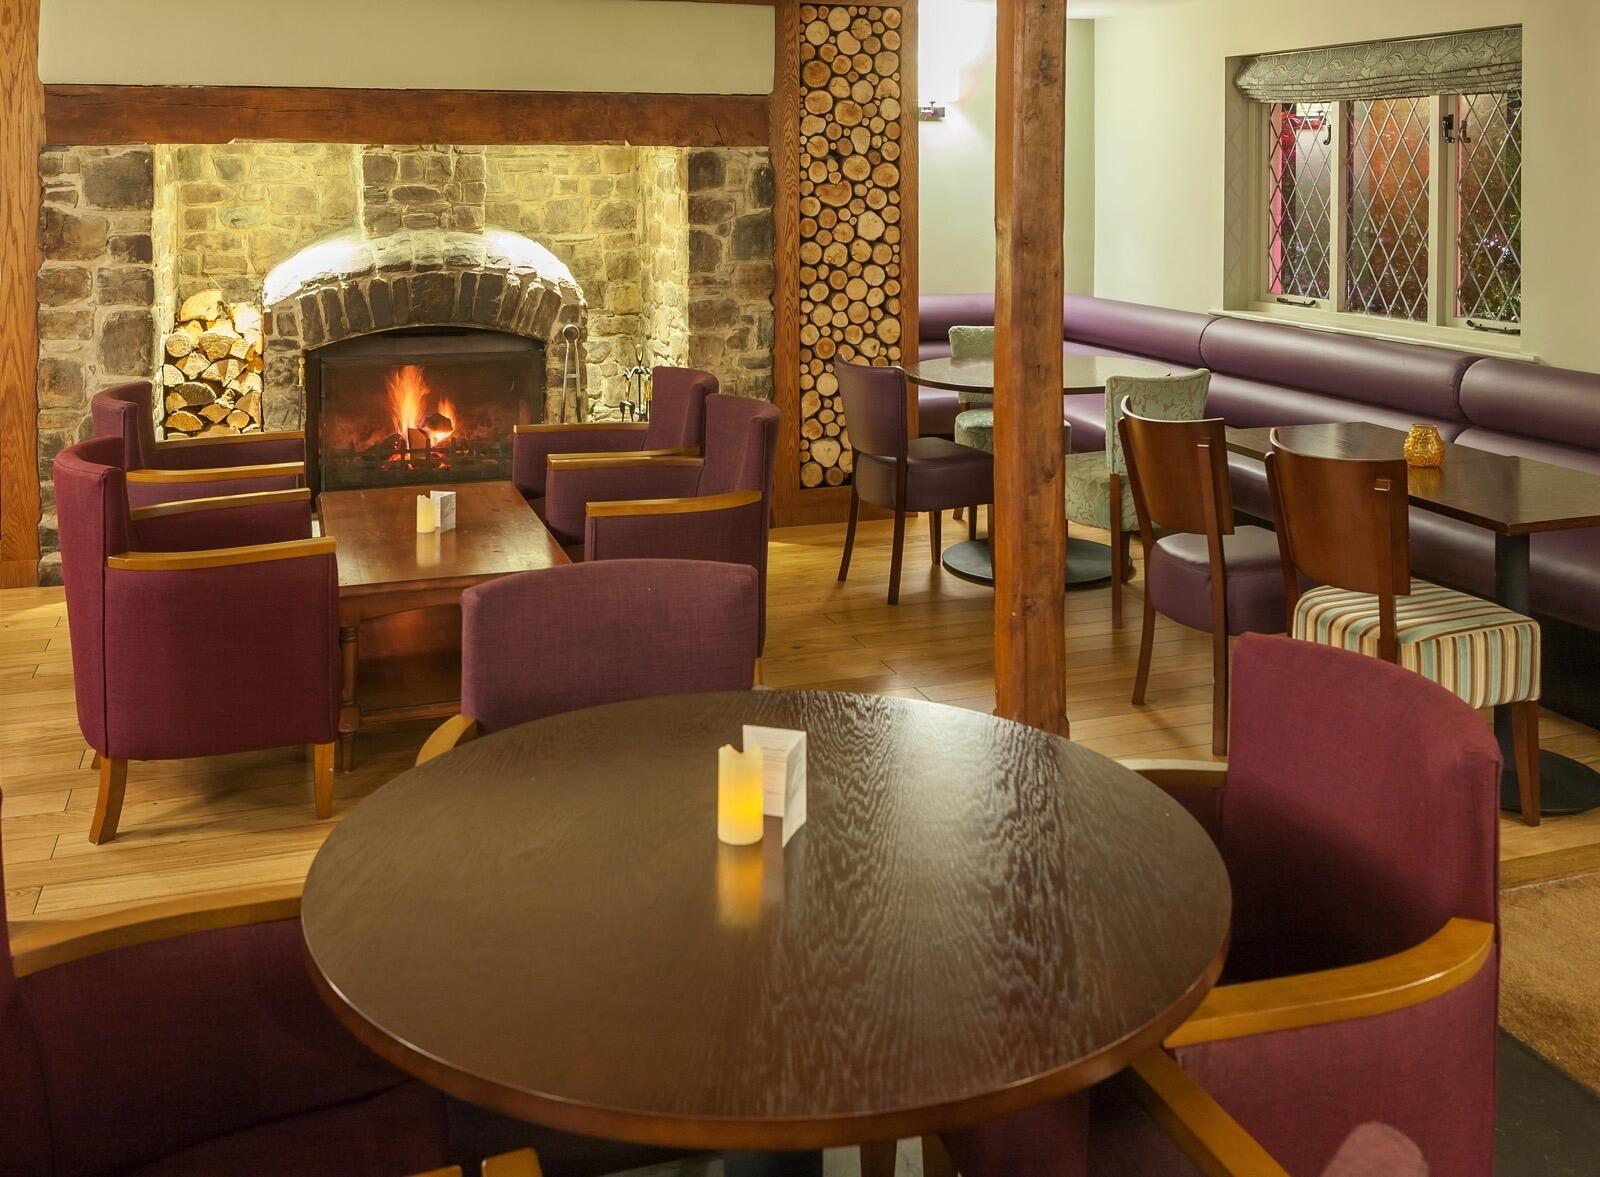 Woodford Bridge Country Club Restaurant and Bar Seating Area